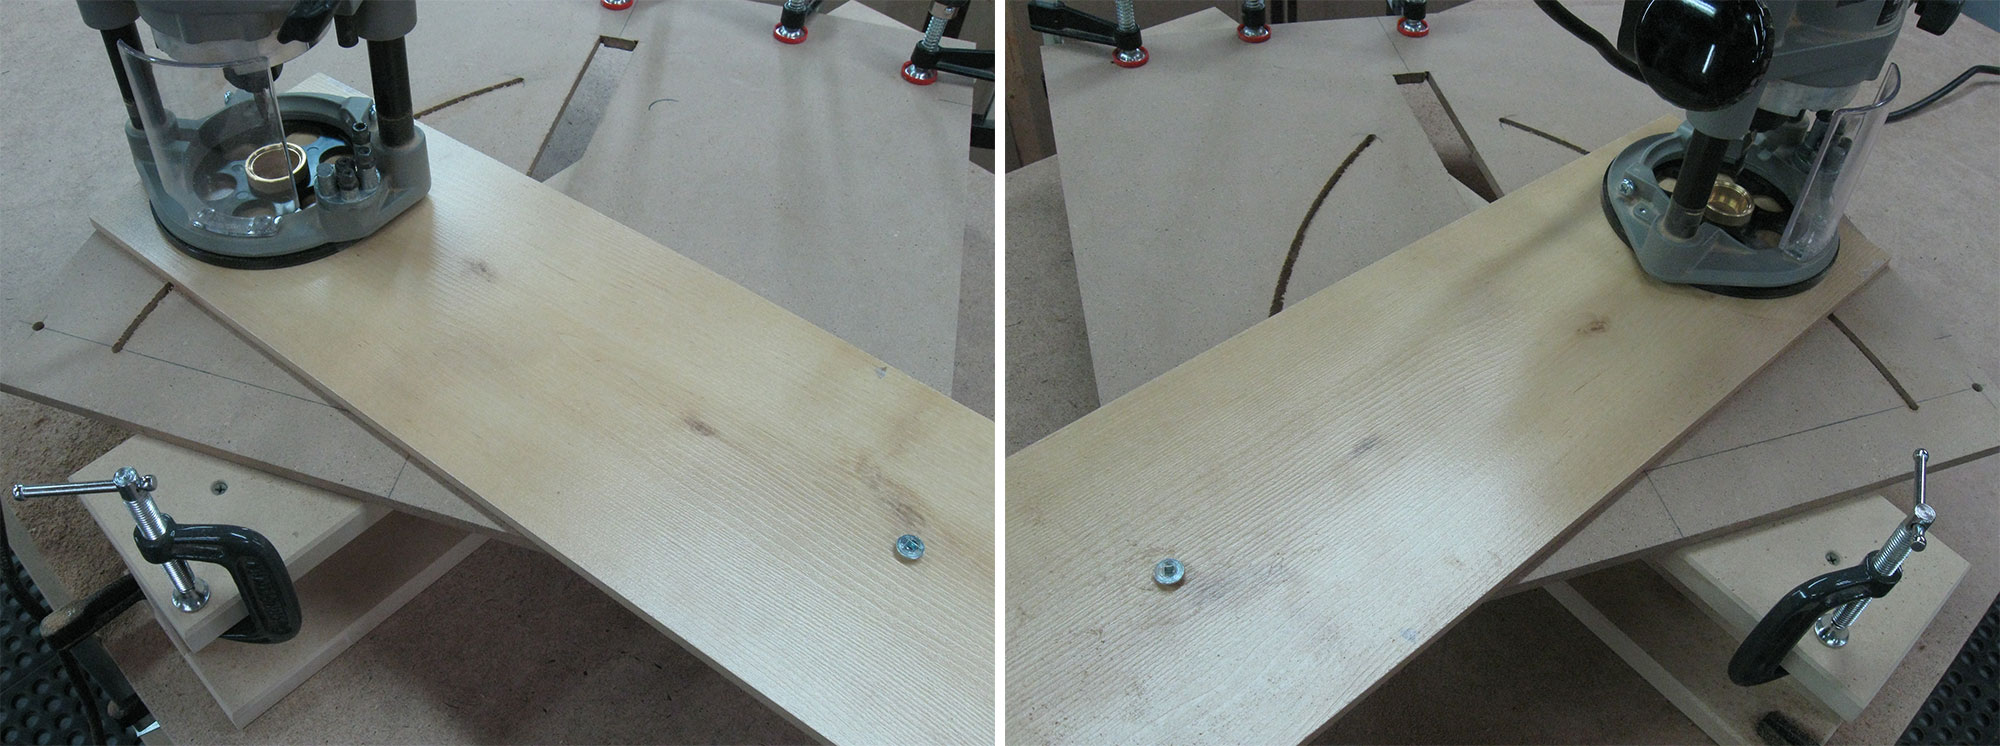 Left: Cutting the first arc. Right: Cutting the second arc.